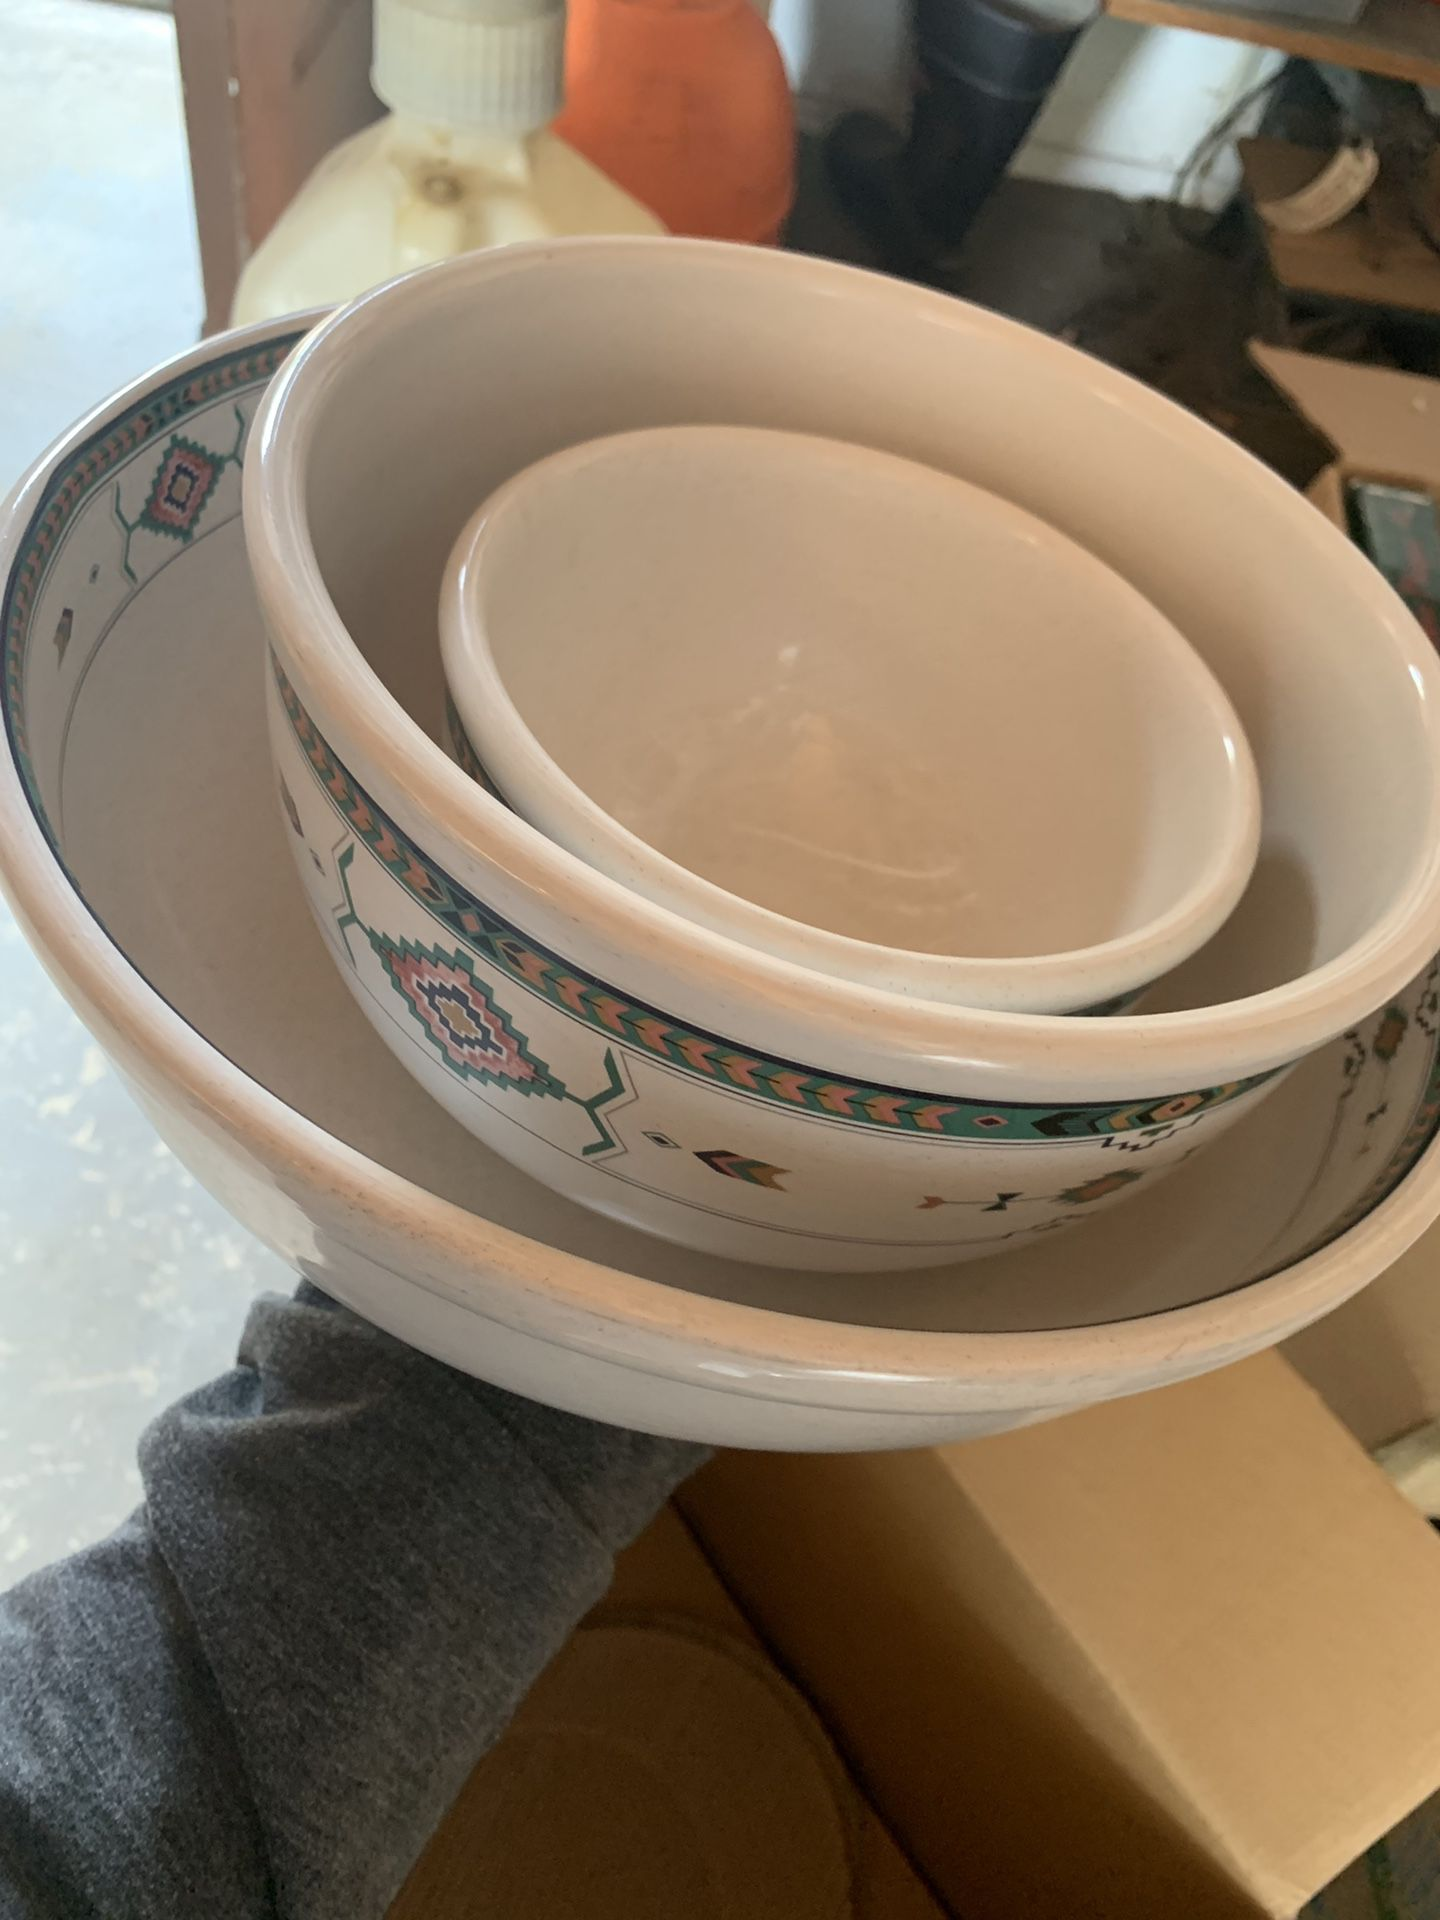 16 piece south western ceramic dish ware and serving sets